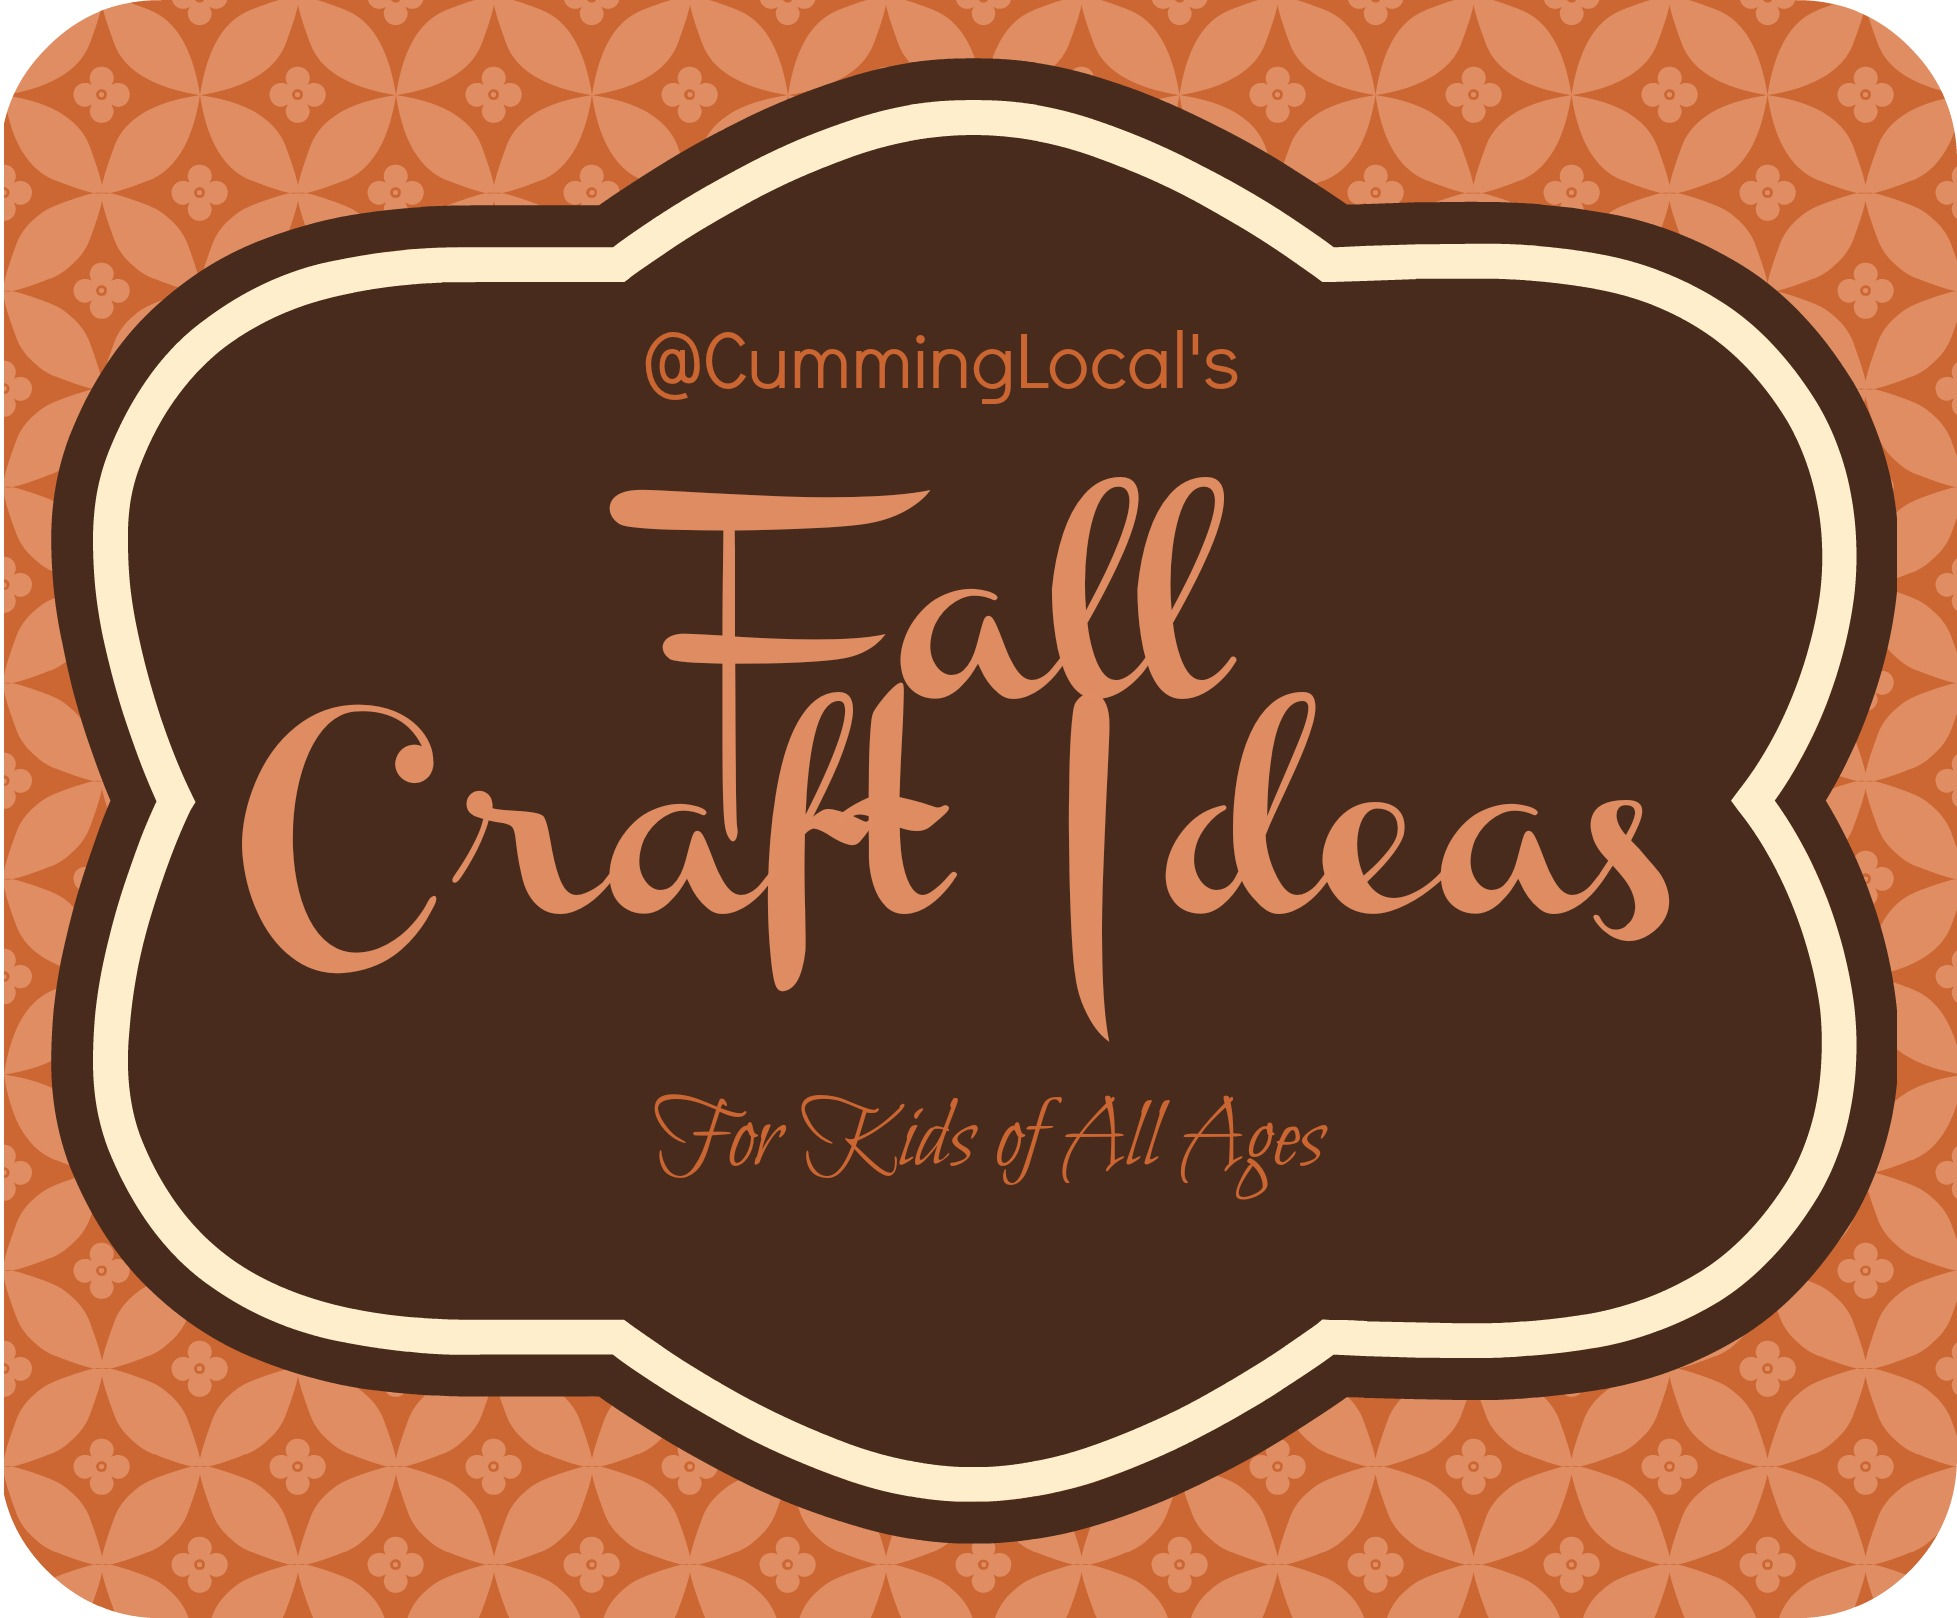 Fall craft ideas for kids of all ages cumming local for Fun crafts for all ages